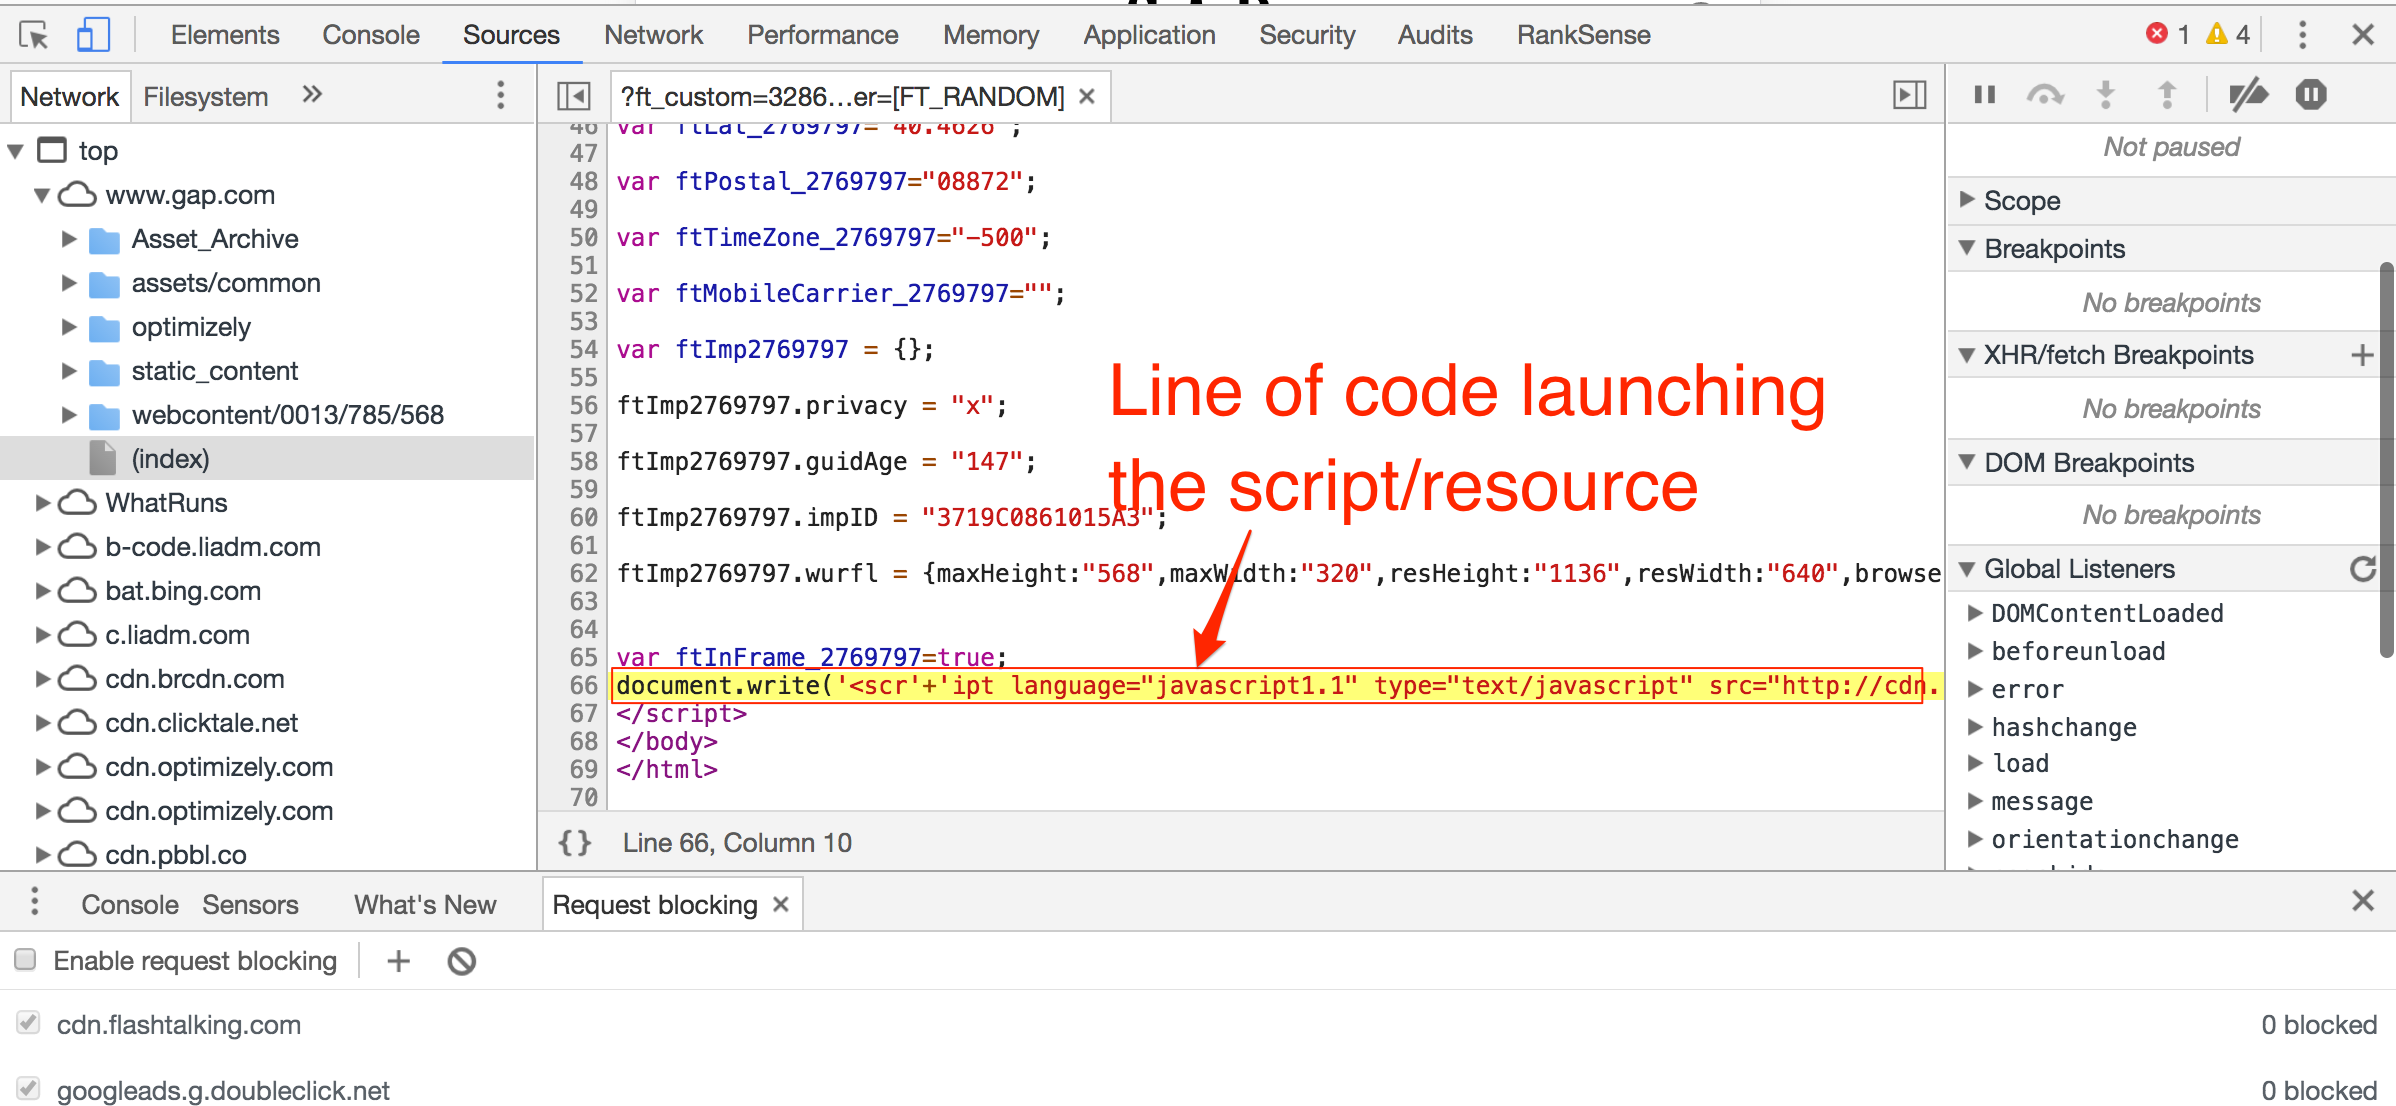 Hold SHIFT on your keyboard and mouse over the element whose caller you want to track. The caller will be highlighted in green. If you mouse over a caller, its callee would be highlighted in red. Click on the script-page name under the Initiator column, and you will get the exact source line of code.